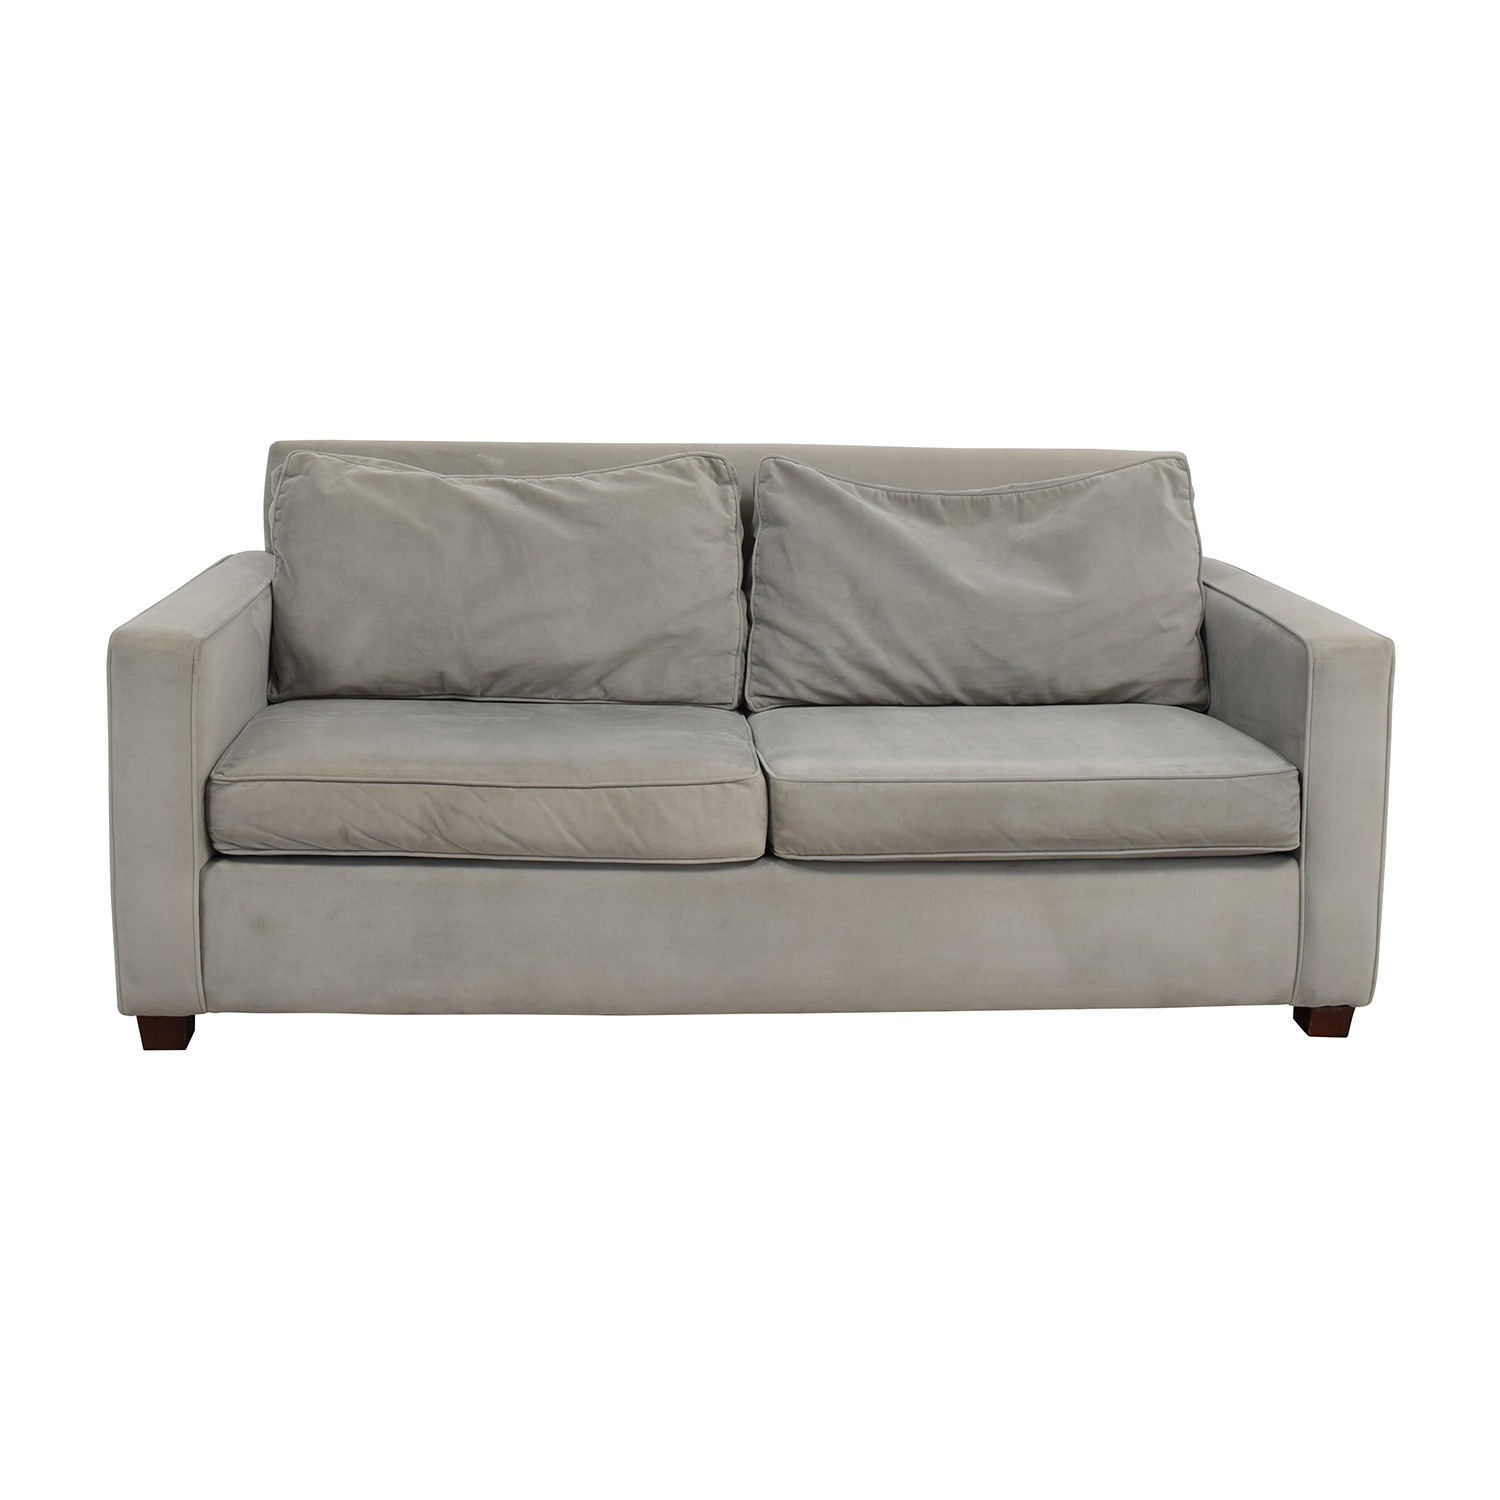 West Elm Henry Two-Seat Sofa / Sofas